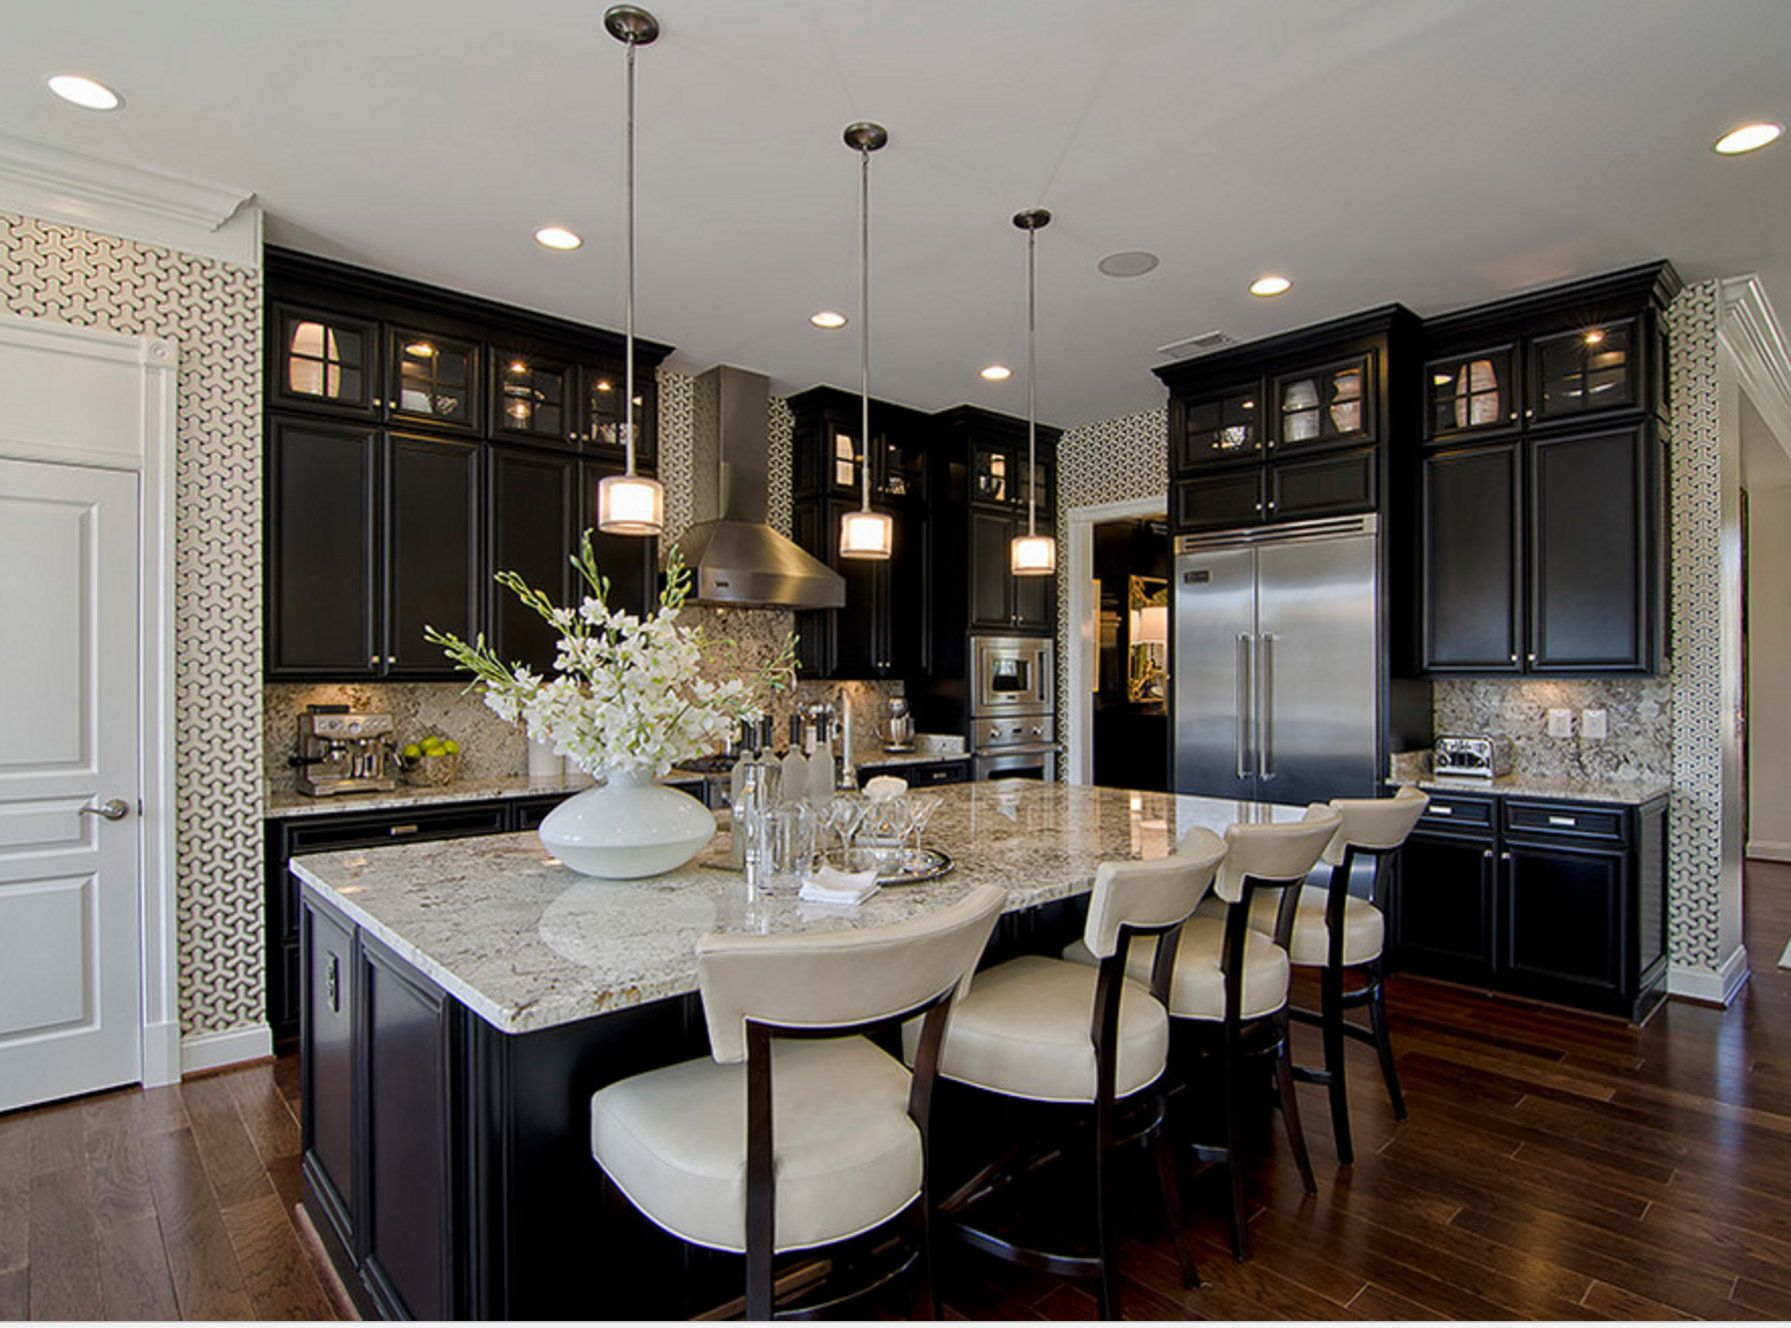 Most Popular Cabinet Paint Colors Kitchen Cabinets Design Layout Black Appliances Kitchen Espresso Kitchen Cabinets